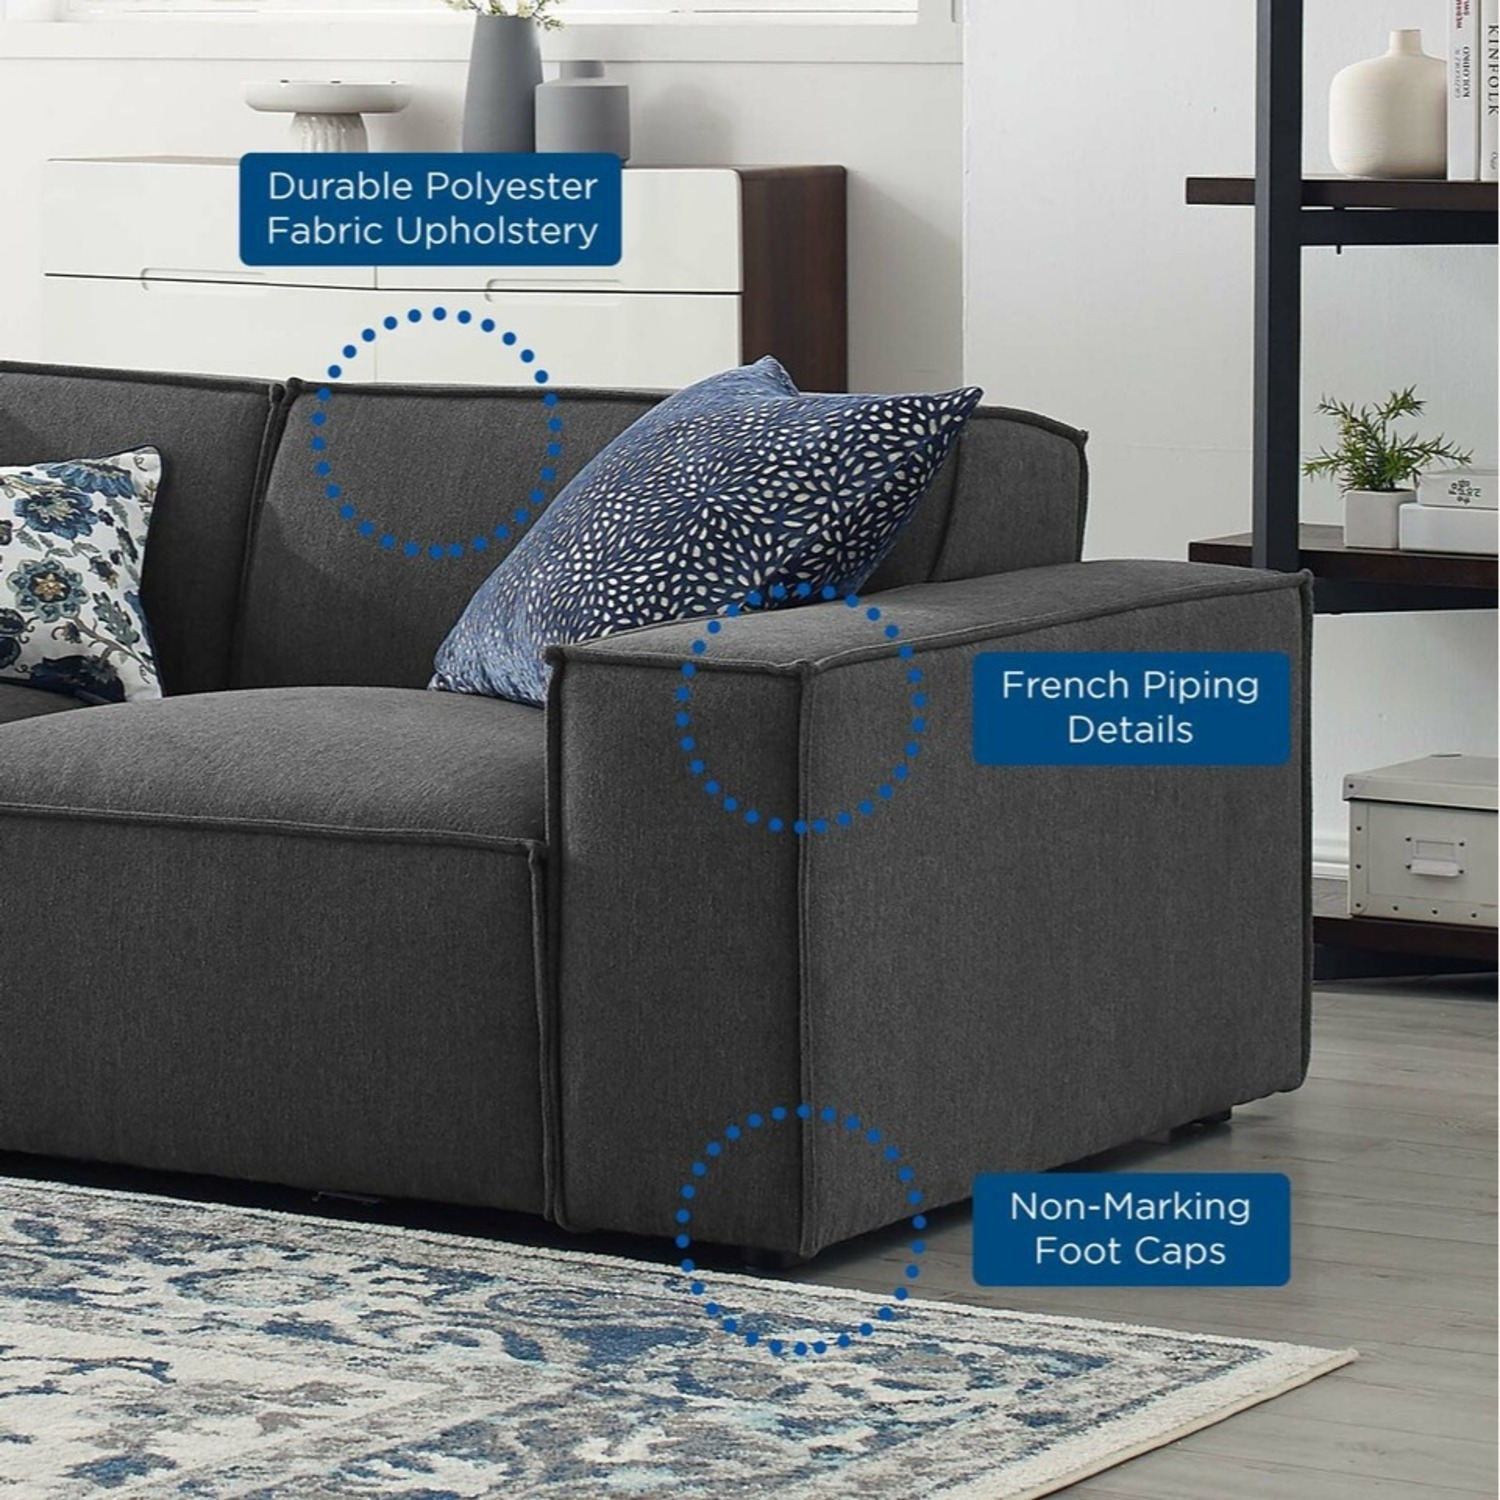 4-Piece Sectional Sofa In Charcoal Upholstery - image-9